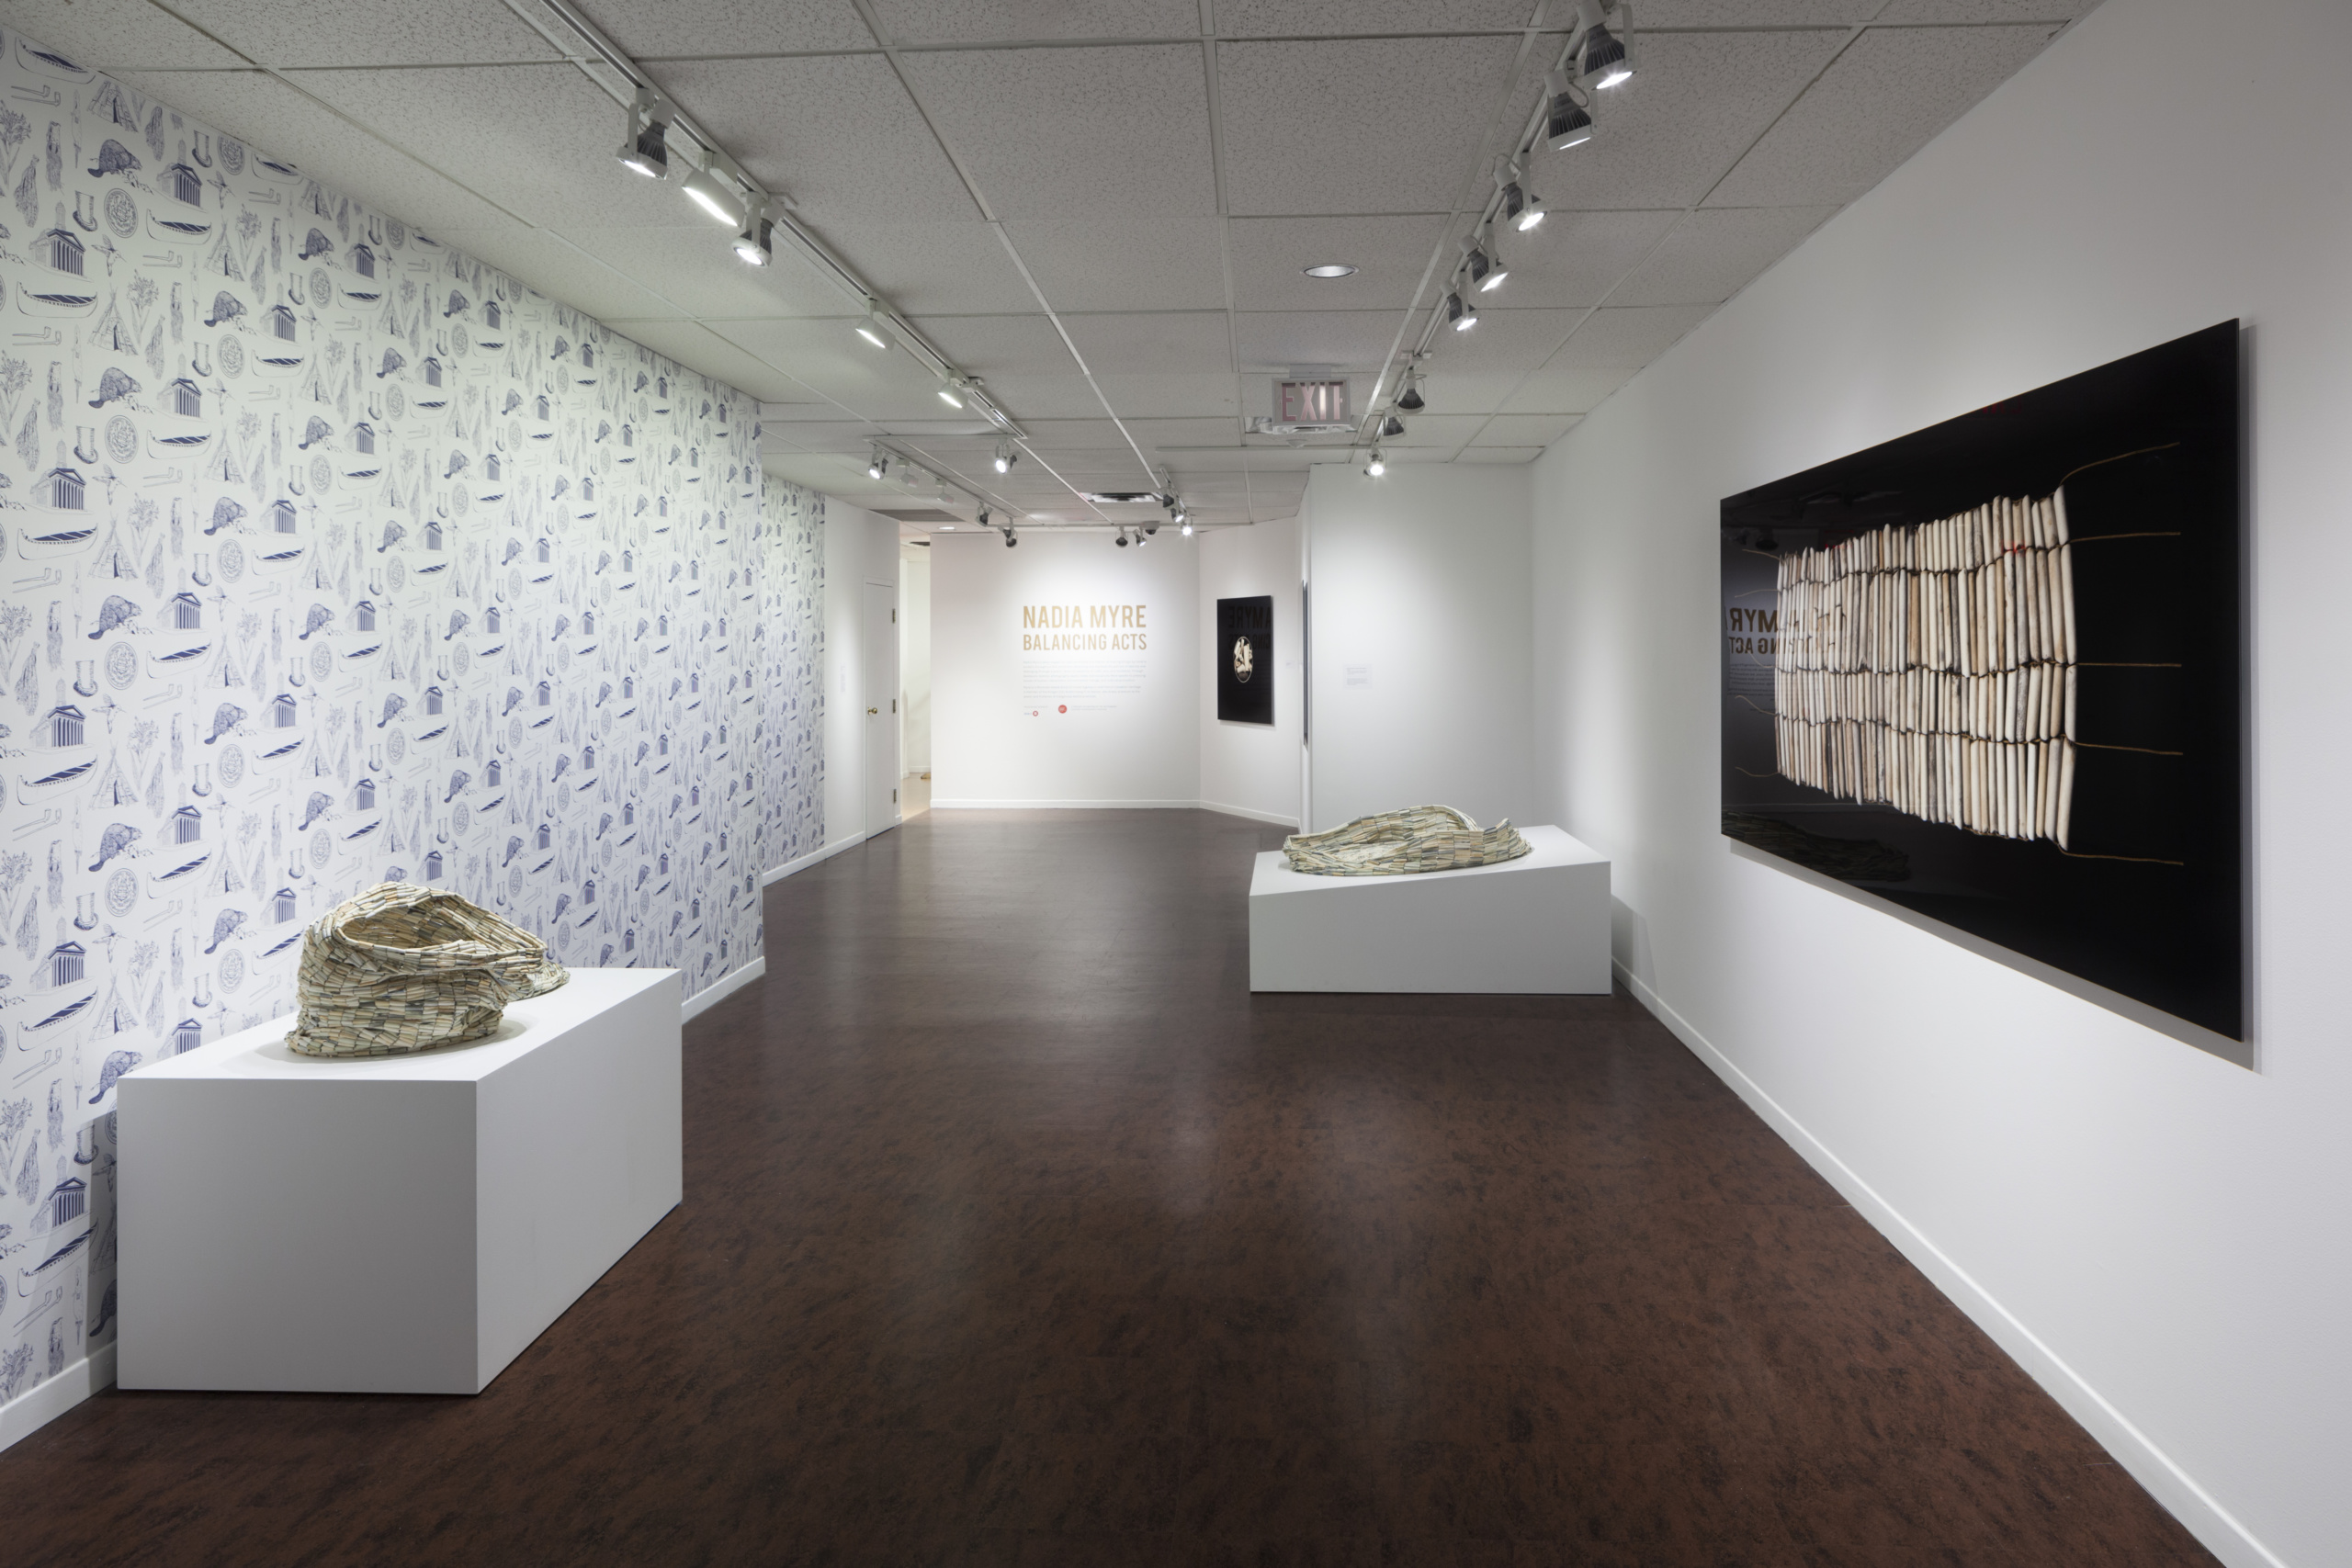 Installation view, Nadia Myre, Balancing Acts, Photo: Darren Rigo. Courtesy of the Textile Museum of Canada.